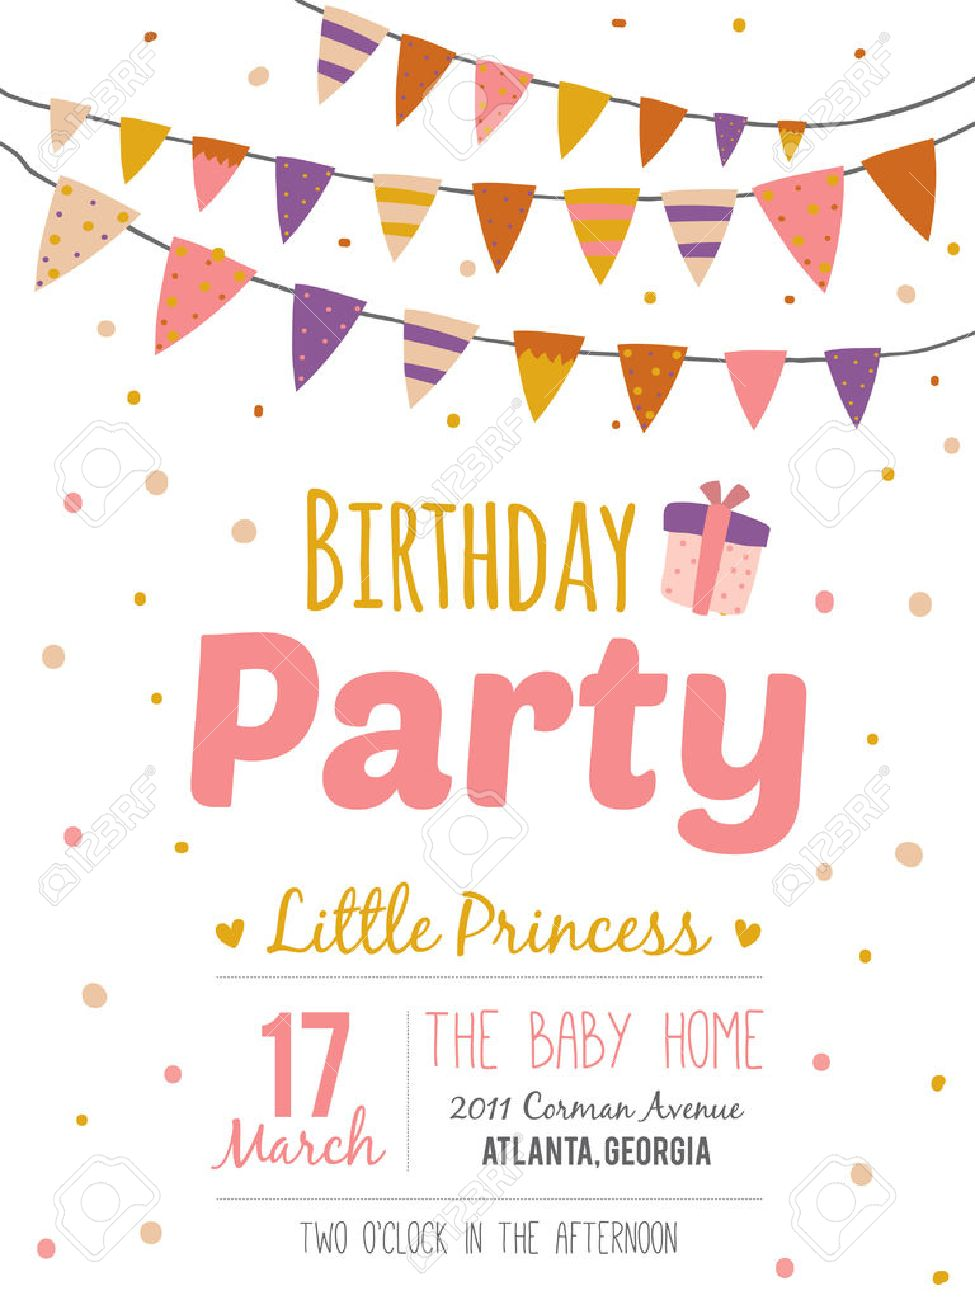 happy birthday poster designs ; 40500387-unusual-inspirational-romantic-and-motivational-quotes-invitation-card-stylish-happy-birthday-poster-Stock-Photo